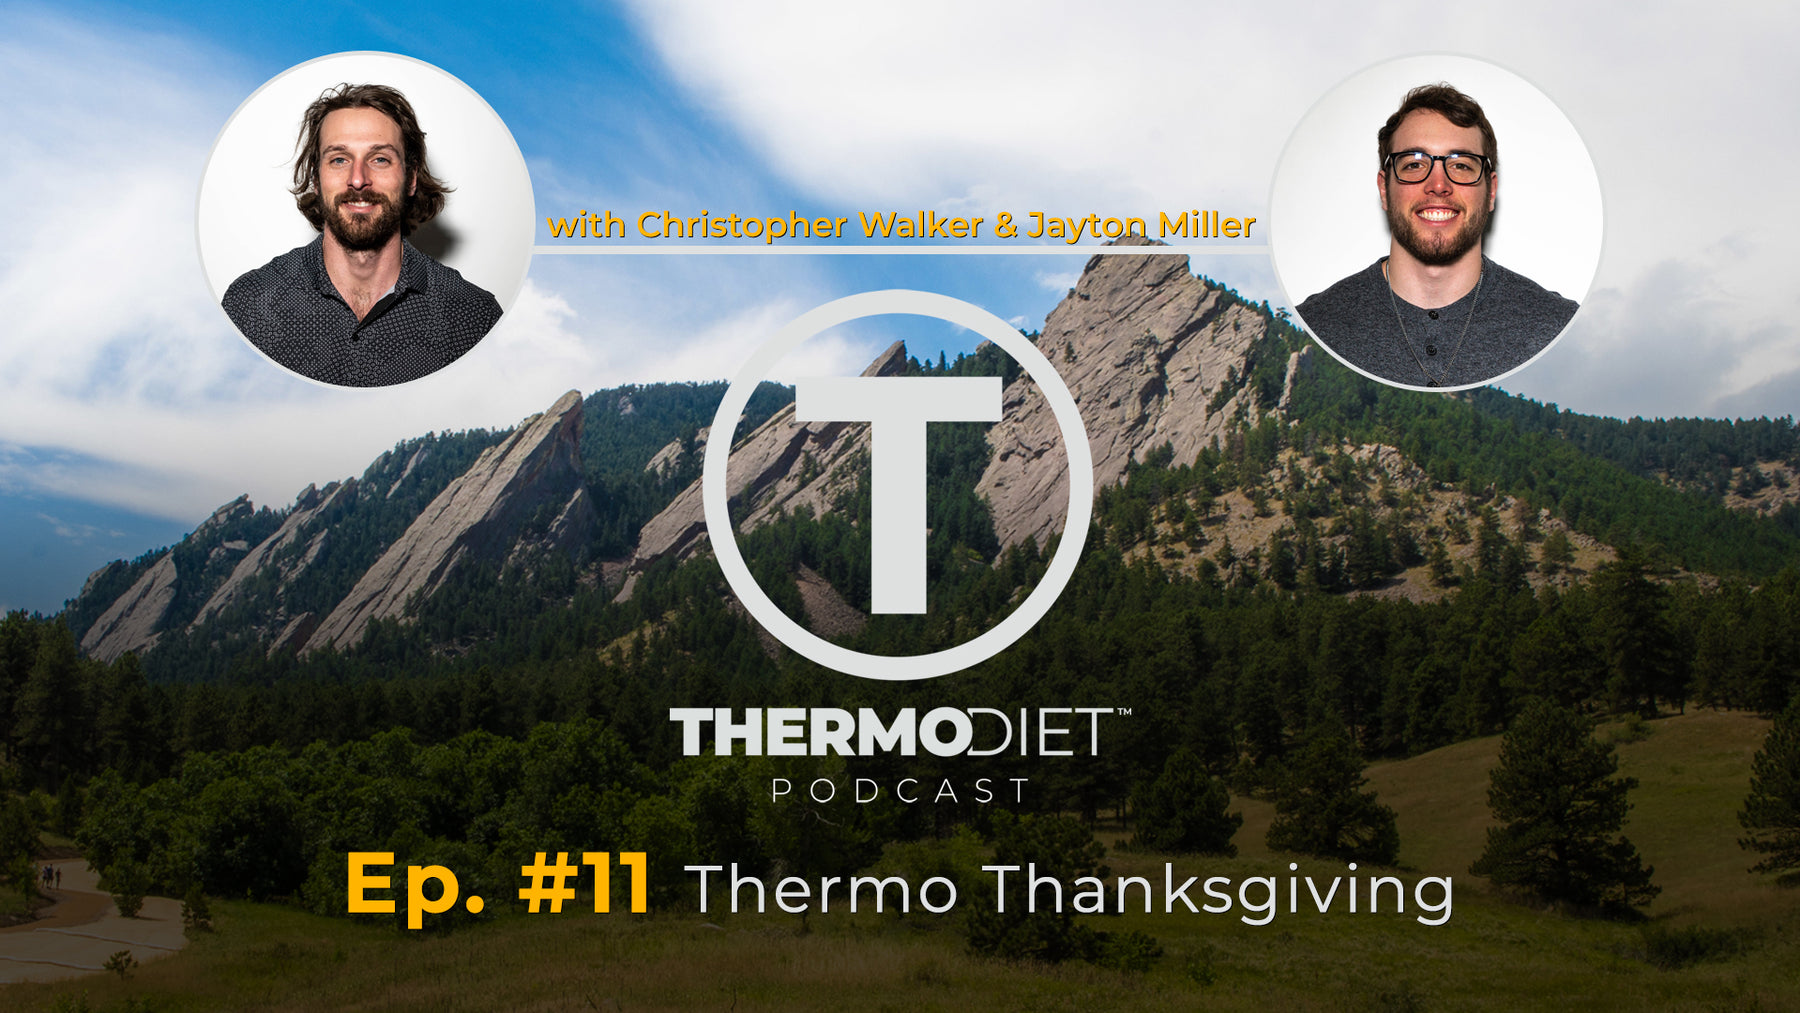 The Thermo Diet Podcast Episode 11 - How To Stay Thermo For Thanksgiving